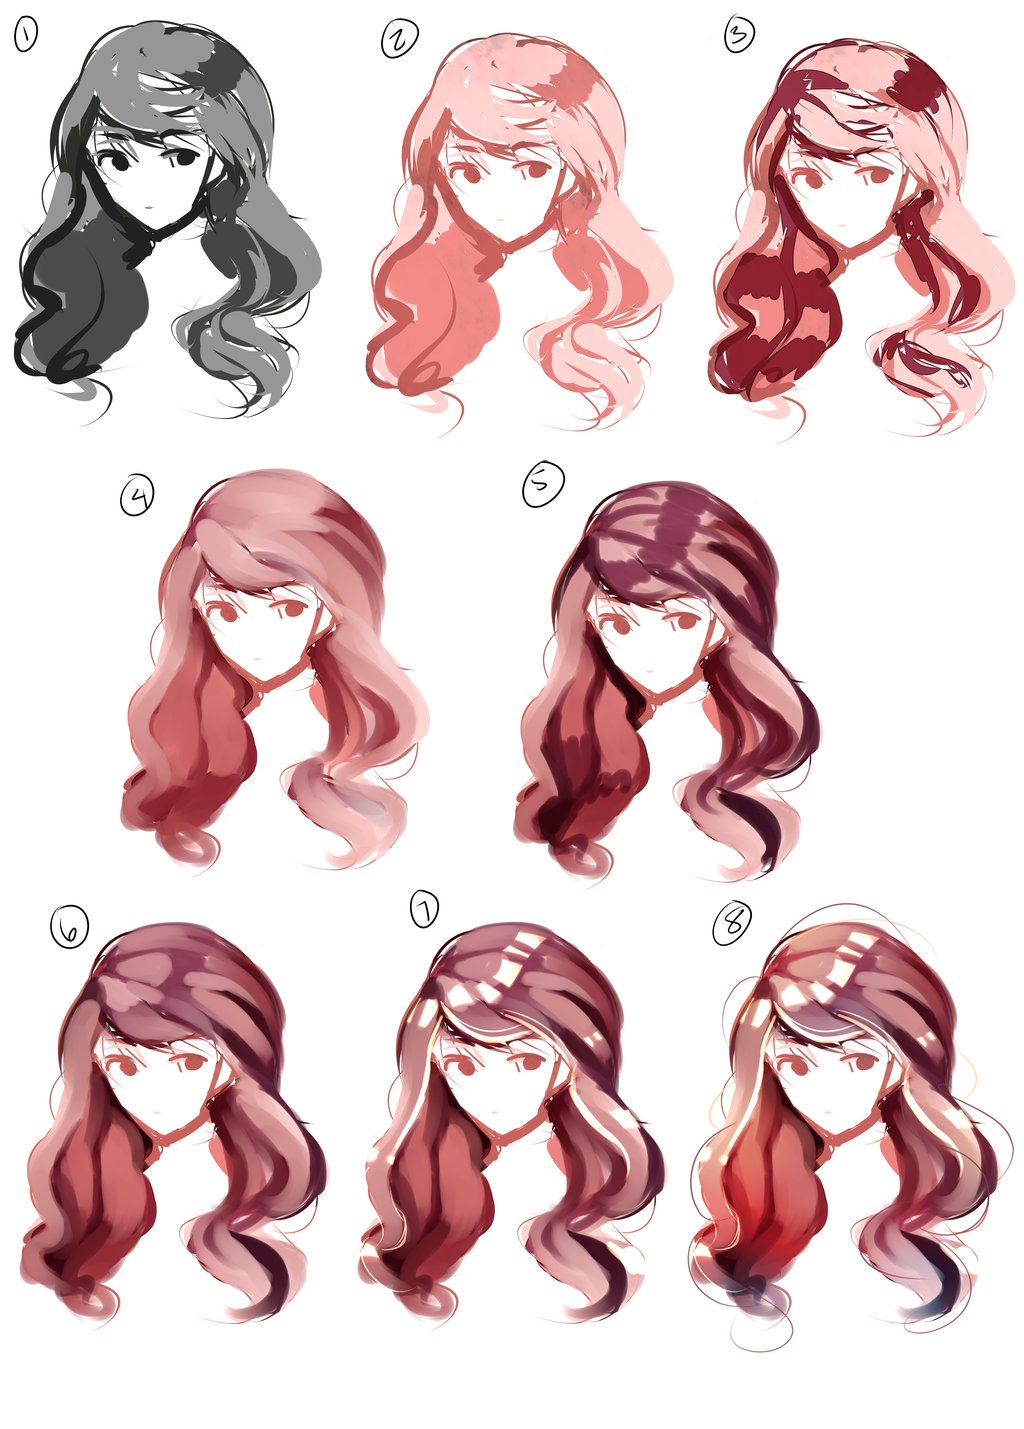 Hair Tutorial Sai Nioxo By Iyokani Digital Painting Tutorials Digital Art Tutorial Hair Tutorial